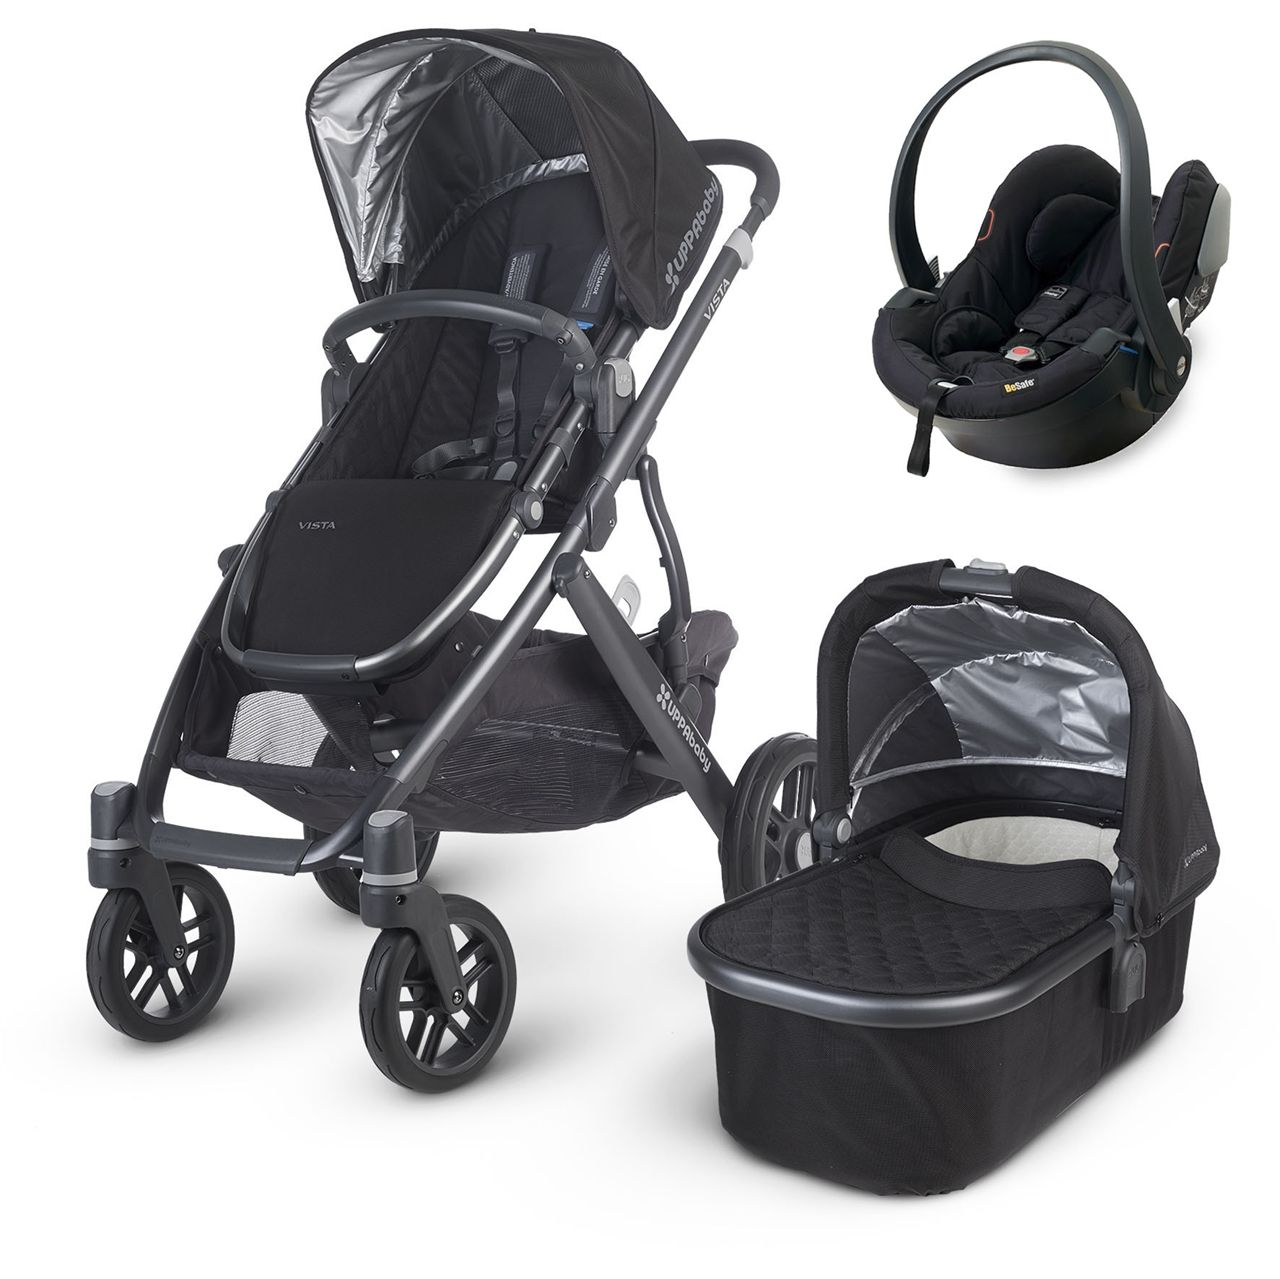 This UPPAbaby Vista 2015 (Jake black) package comes